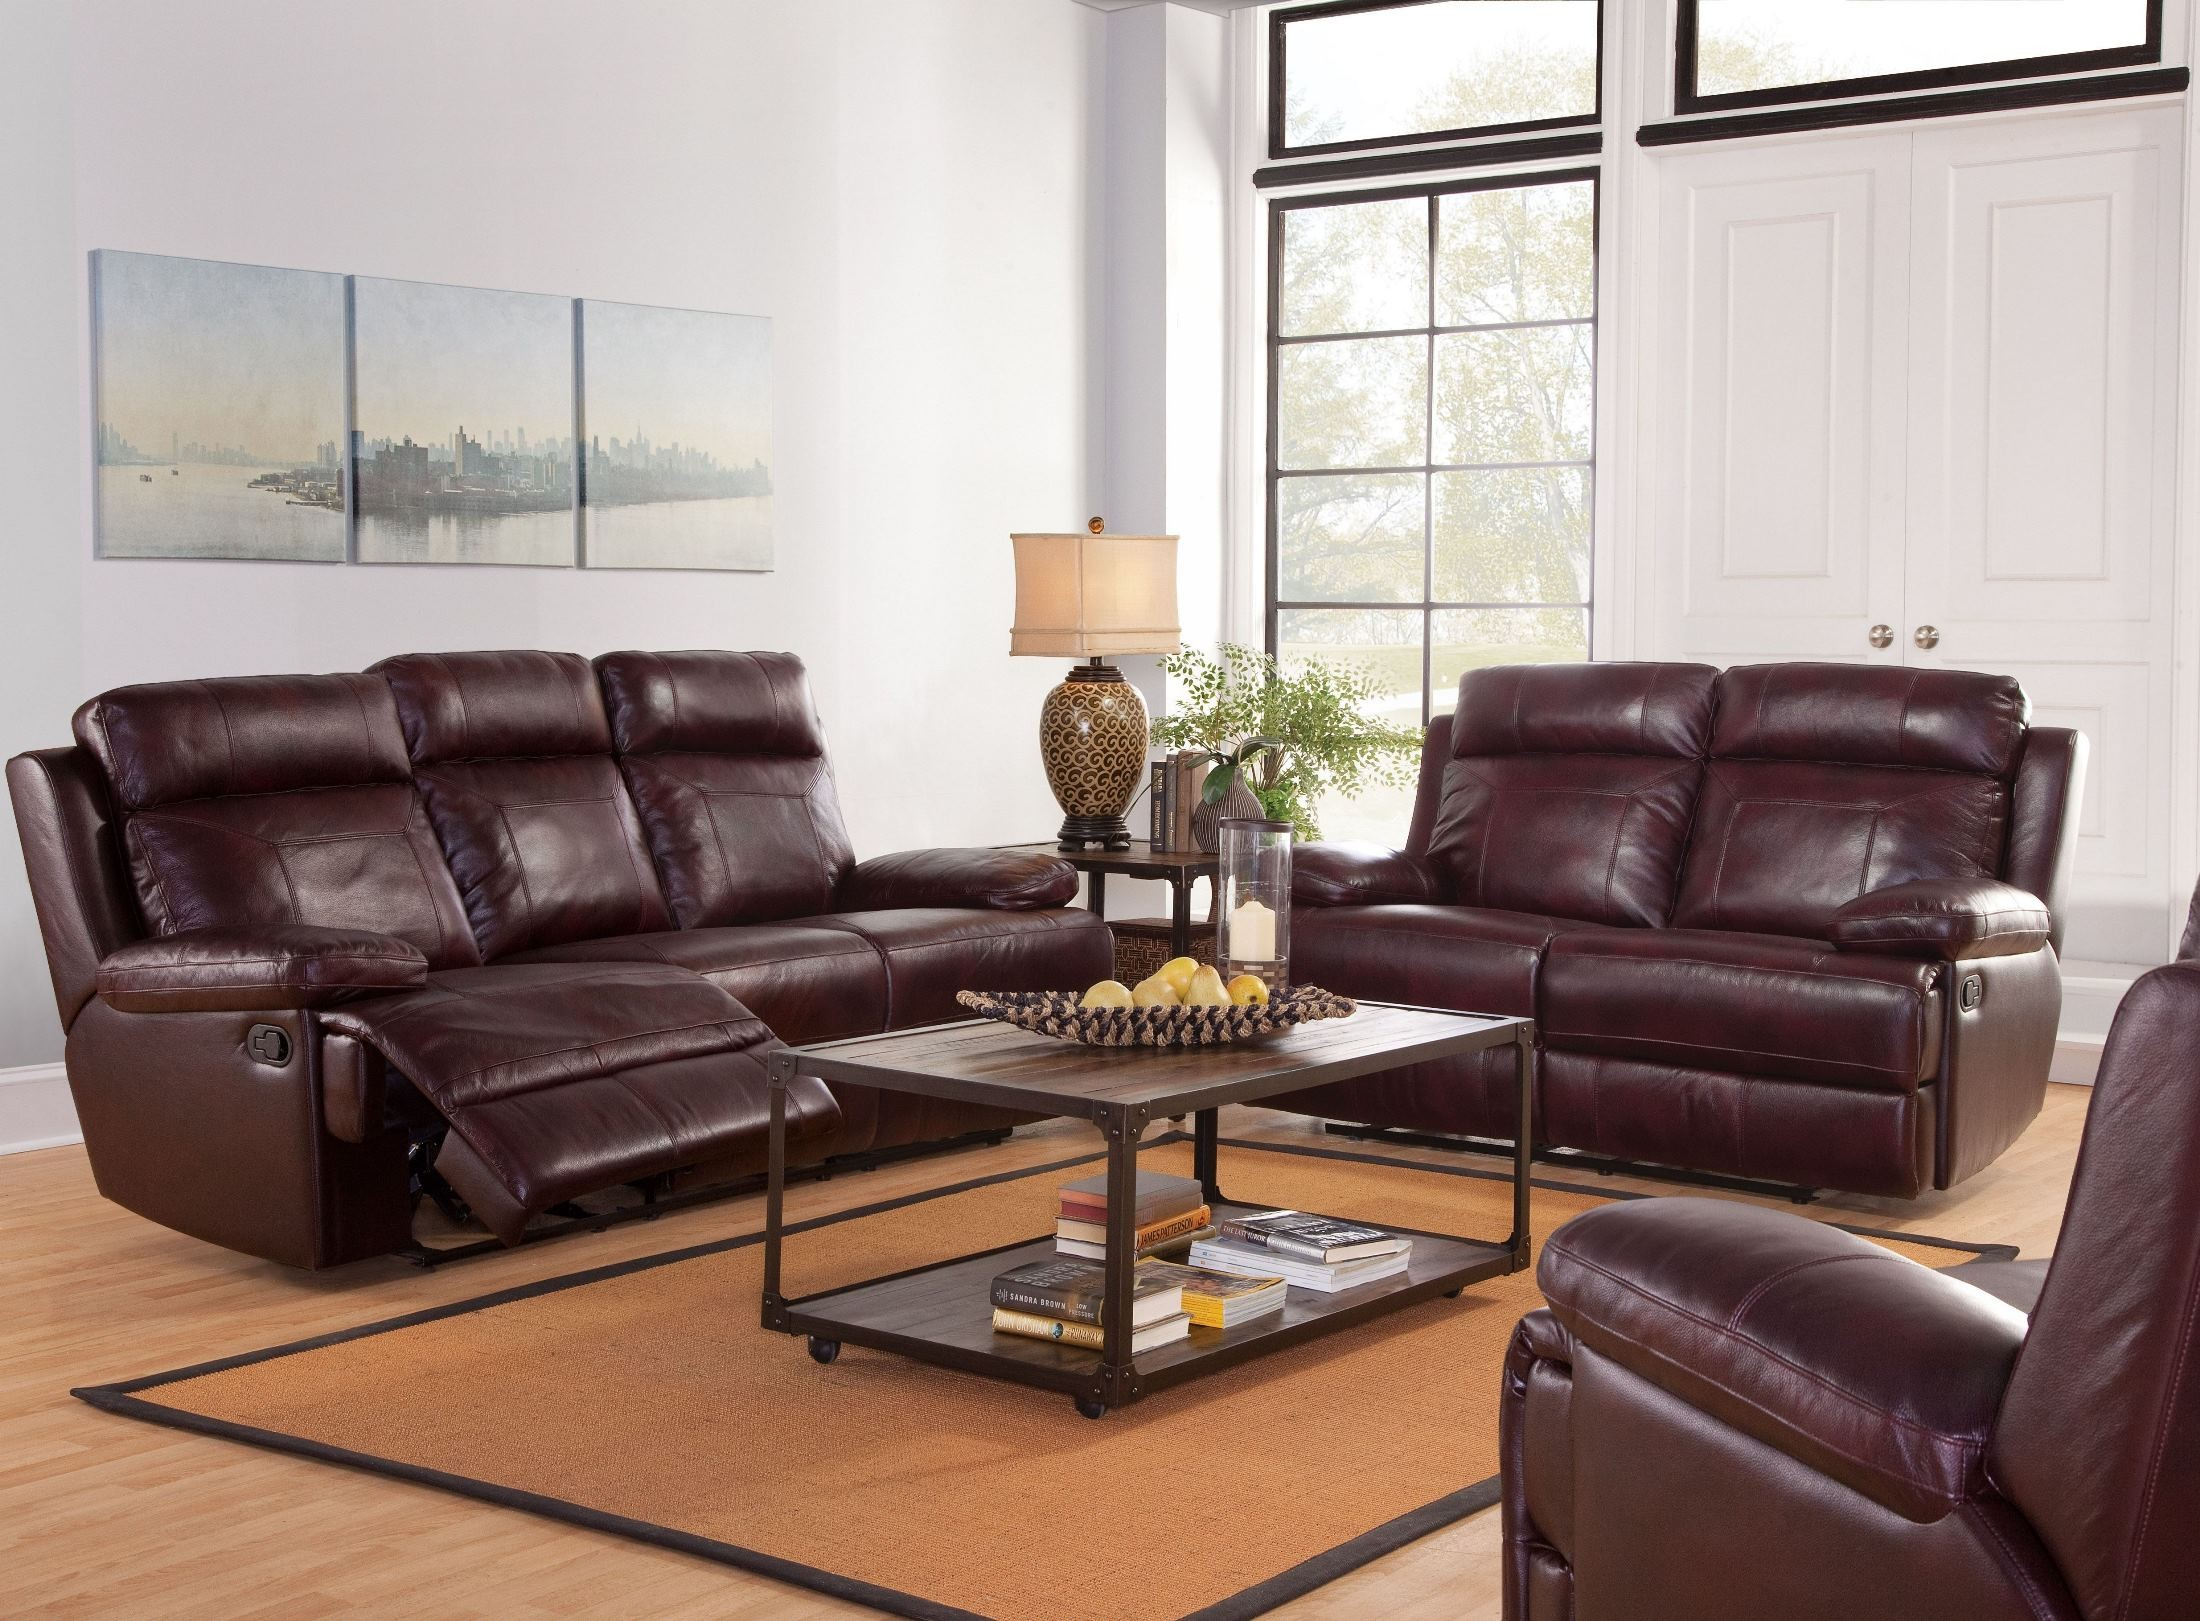 Mansfield Burgundy Power Reclining Living Room Set L6807